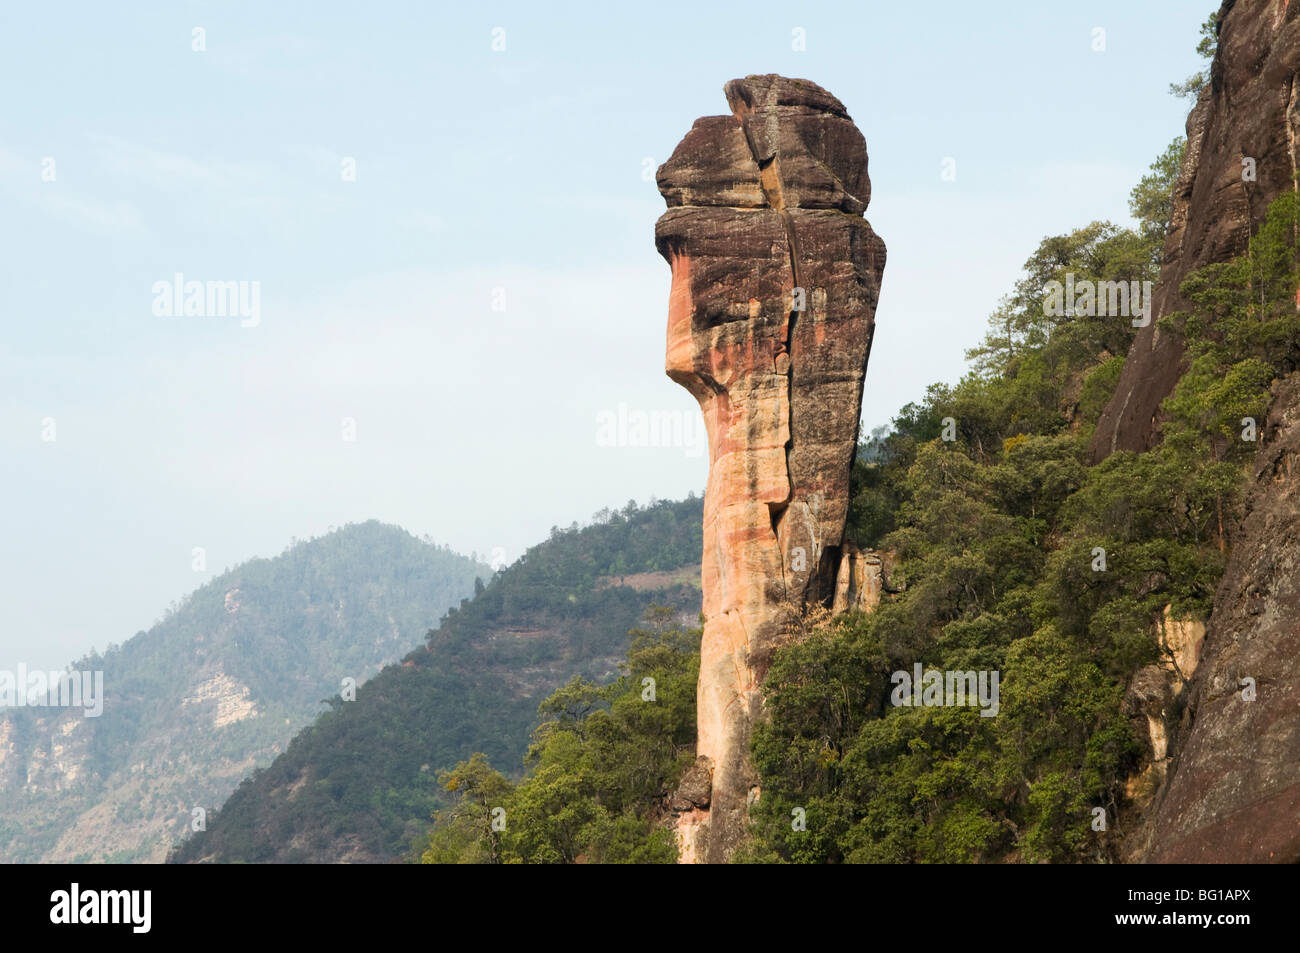 Rock outcrop in Three Parallel Gorges National Park, UNESCO World Heritage Site, Liming town, Yunnan Province, China, - Stock Image